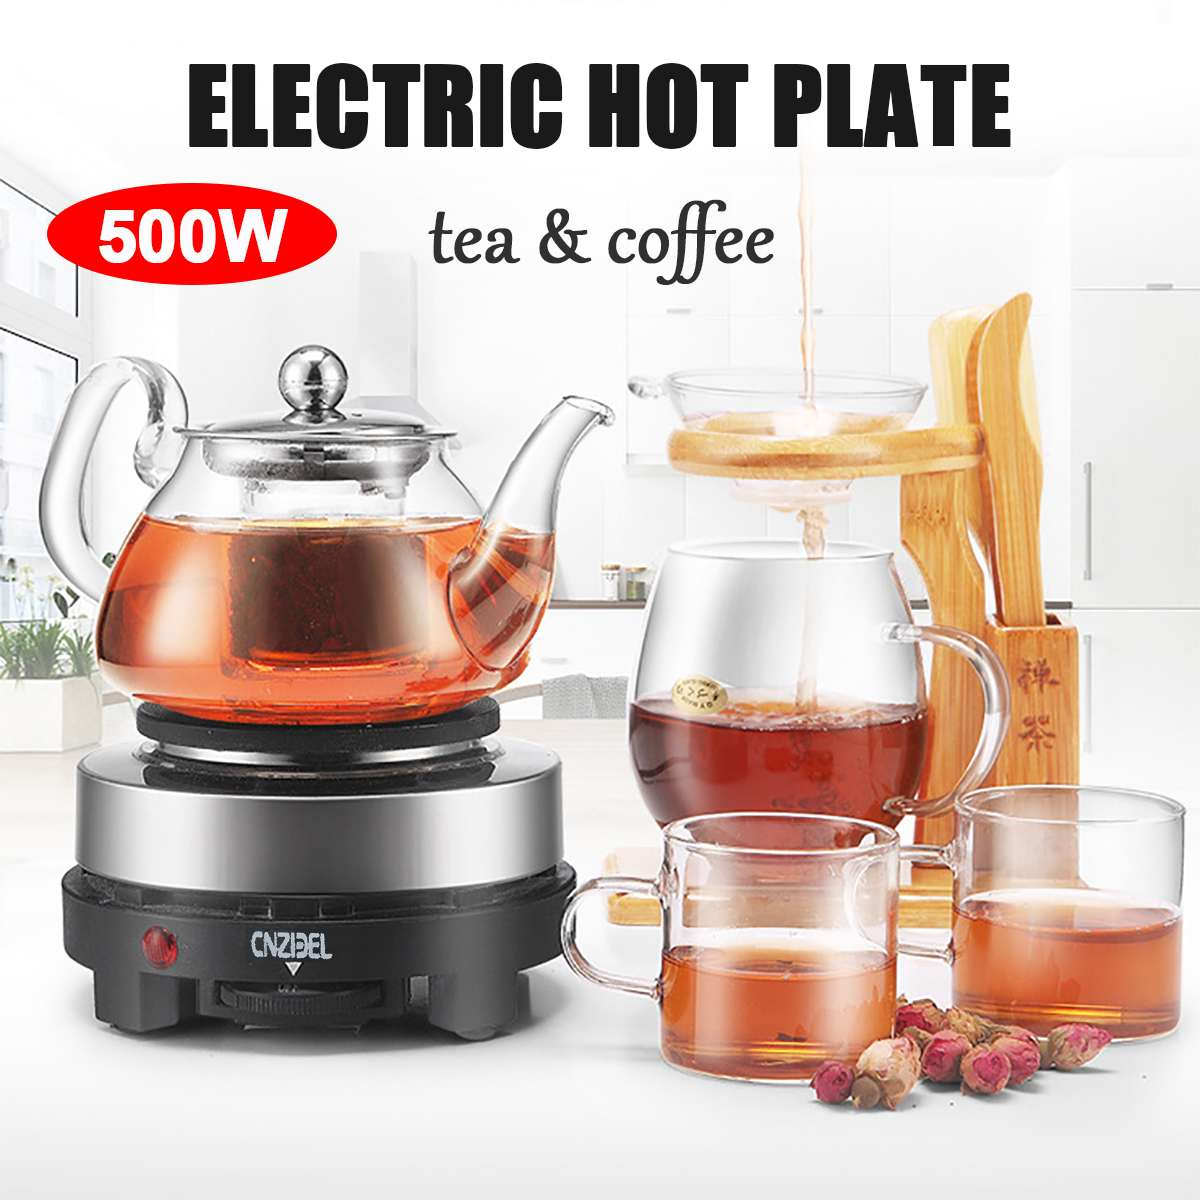 500W Electric Heater Stove Mini Hot Plate Cooker Electrothermal Tea Coffee Milk Heating Furnace Multifunctional Kitchen Applianc